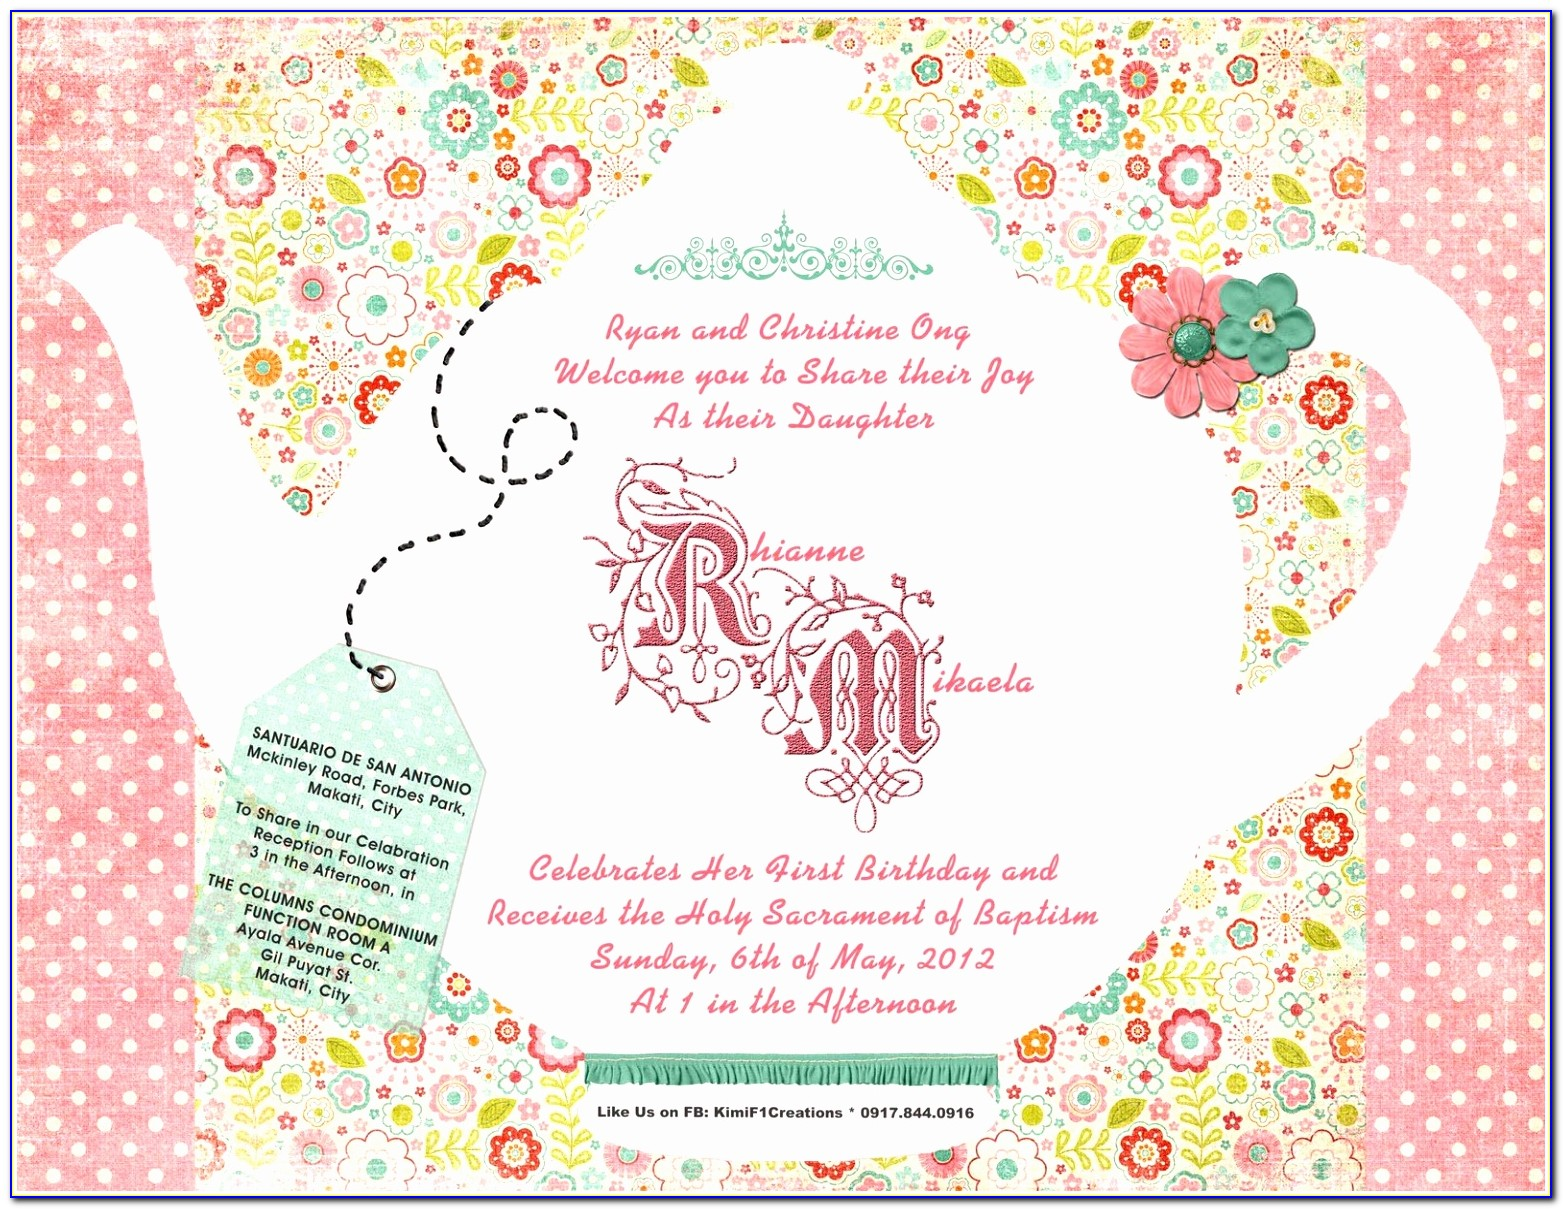 Tea Party Invitation Template Design Vintage Party Invitation Templates Lovely Pdf Word Excel Download Templates Paete